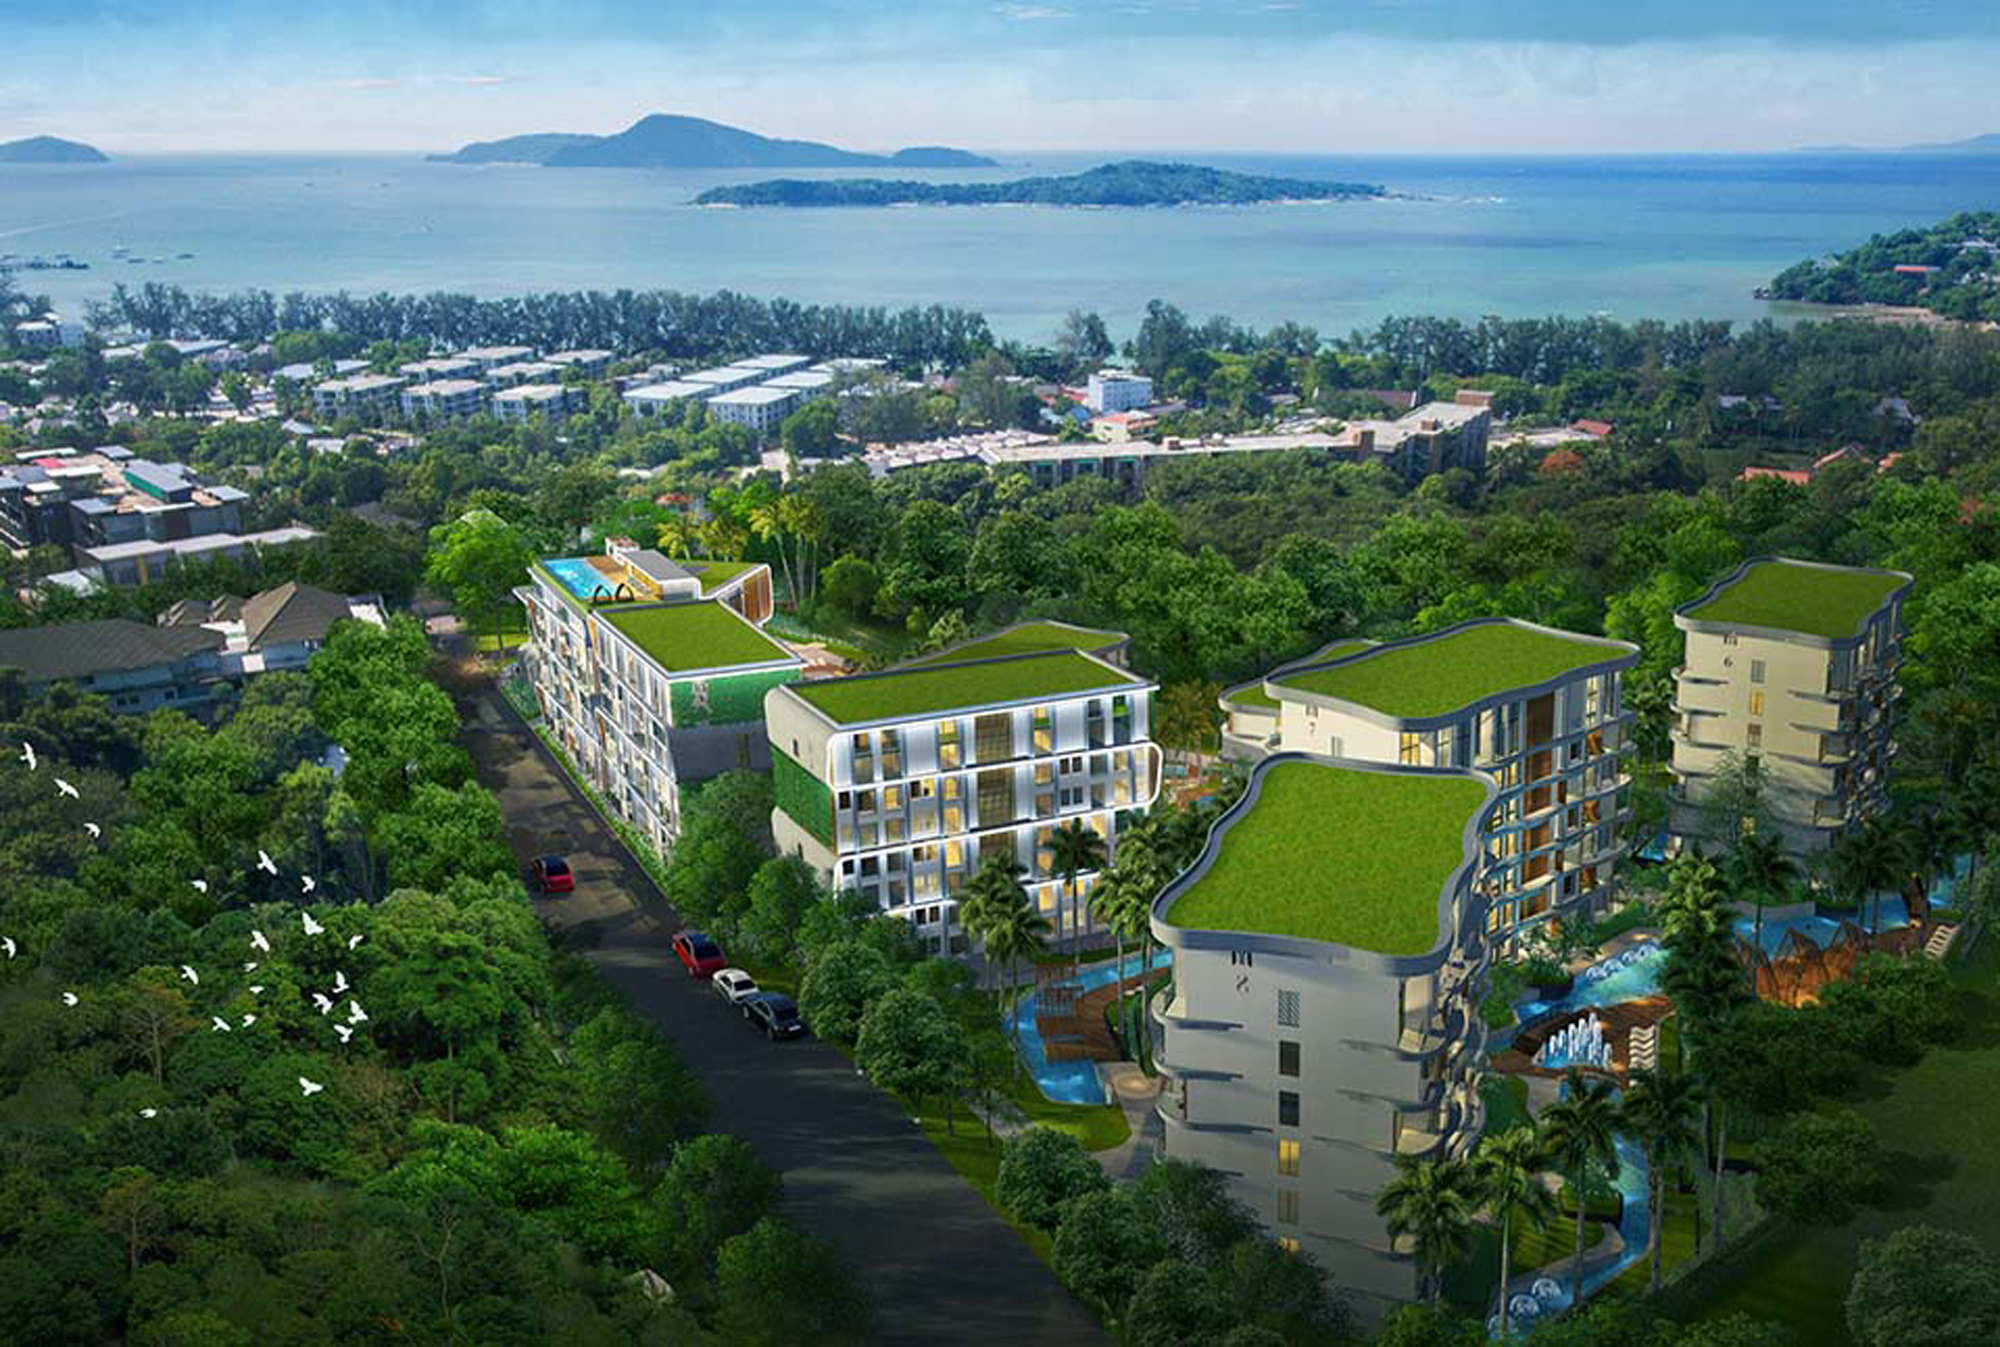 1 Bedroom unit in the large development in Rawai